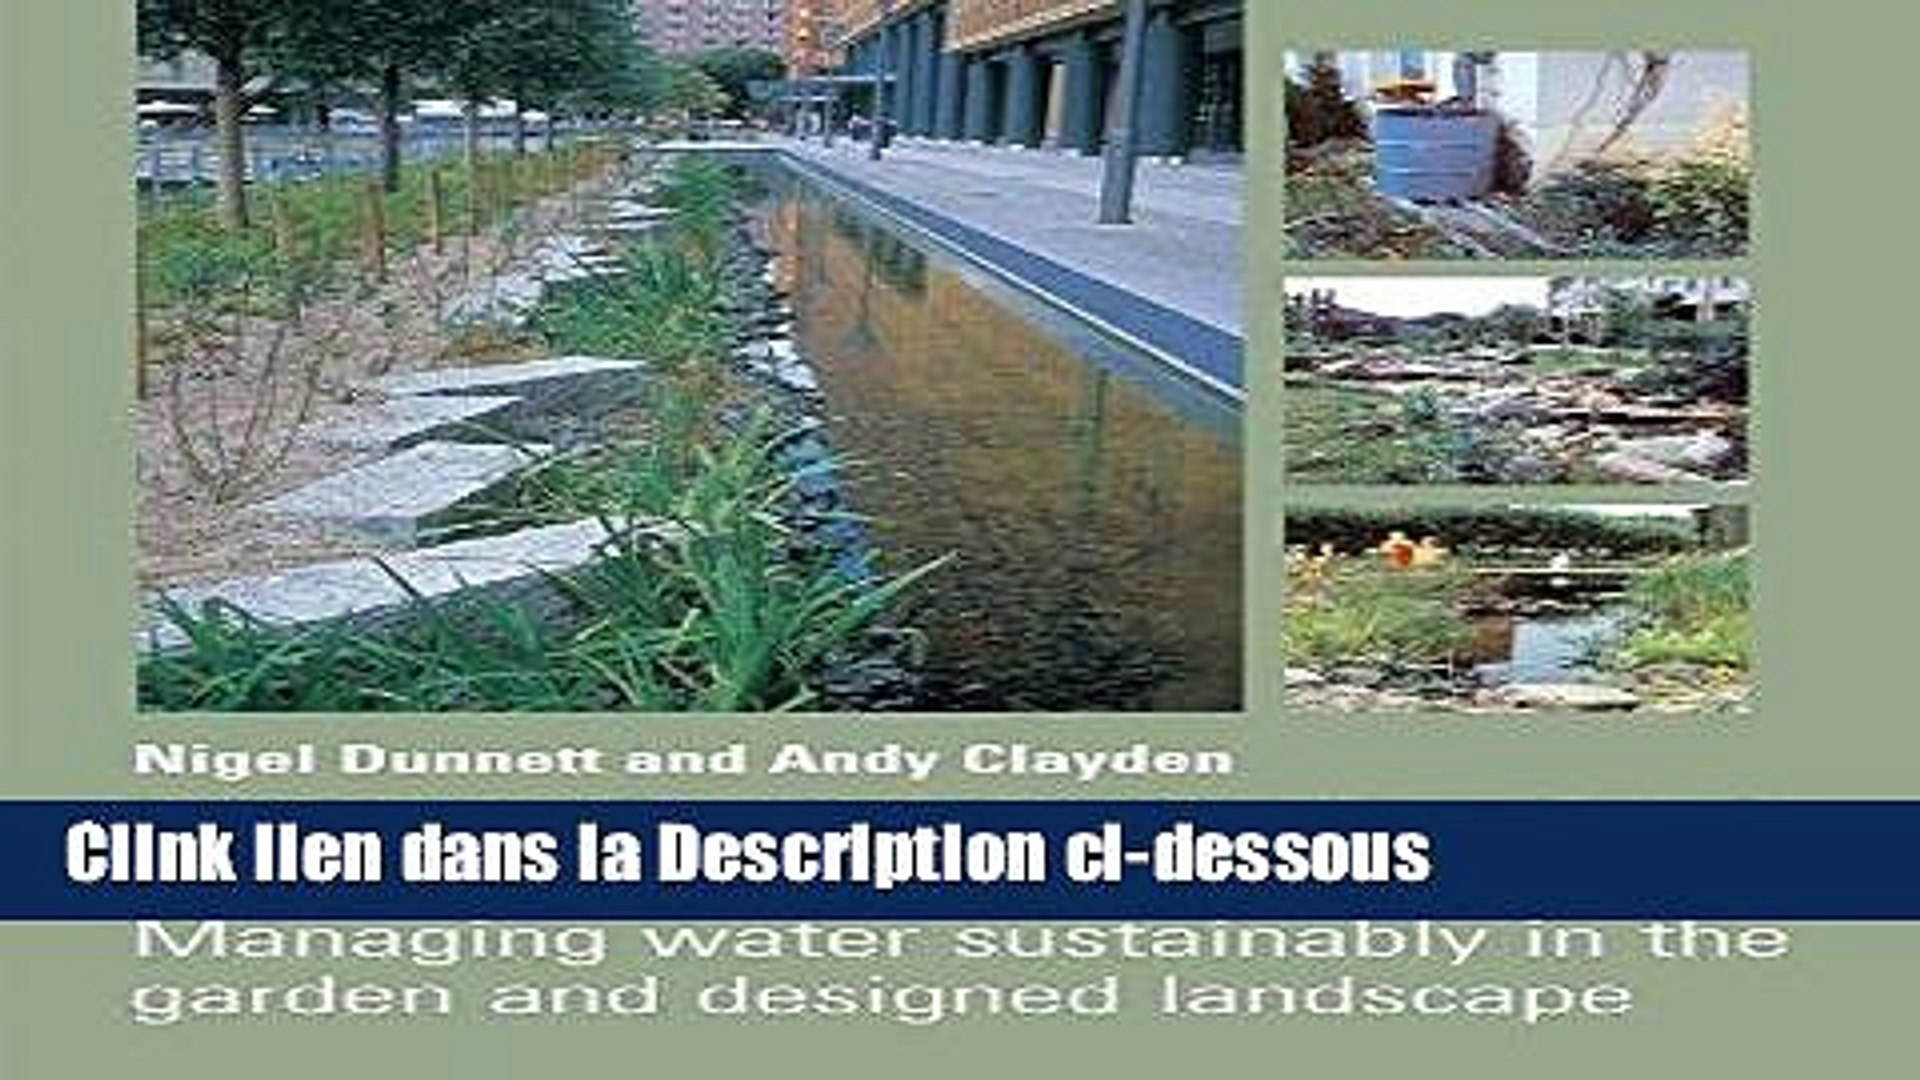 Télécharger Epub Rain Gardens: Managing Water Sustainably in the Garden and Designed Landscape